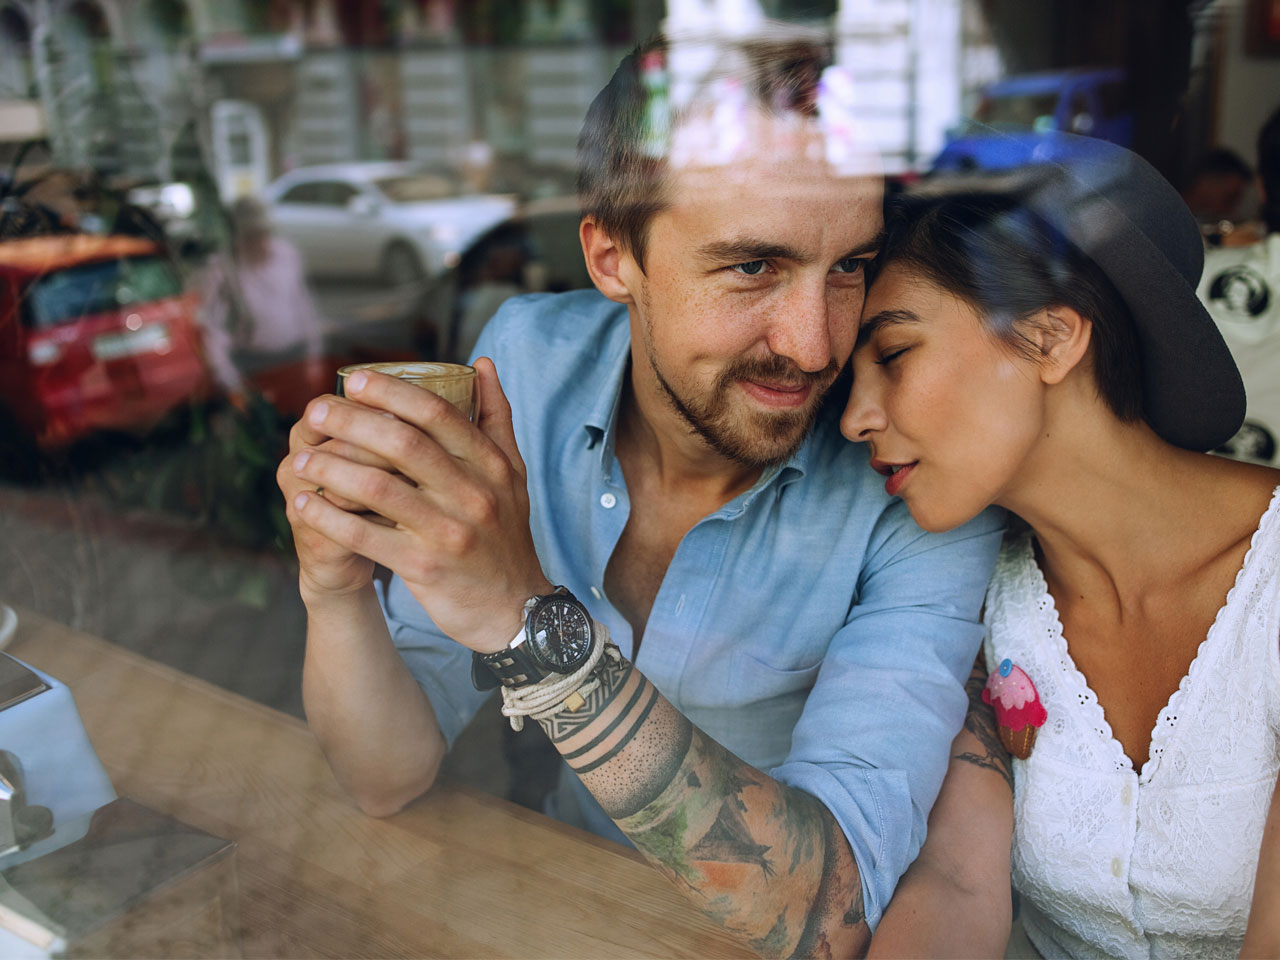 Inked guys dating